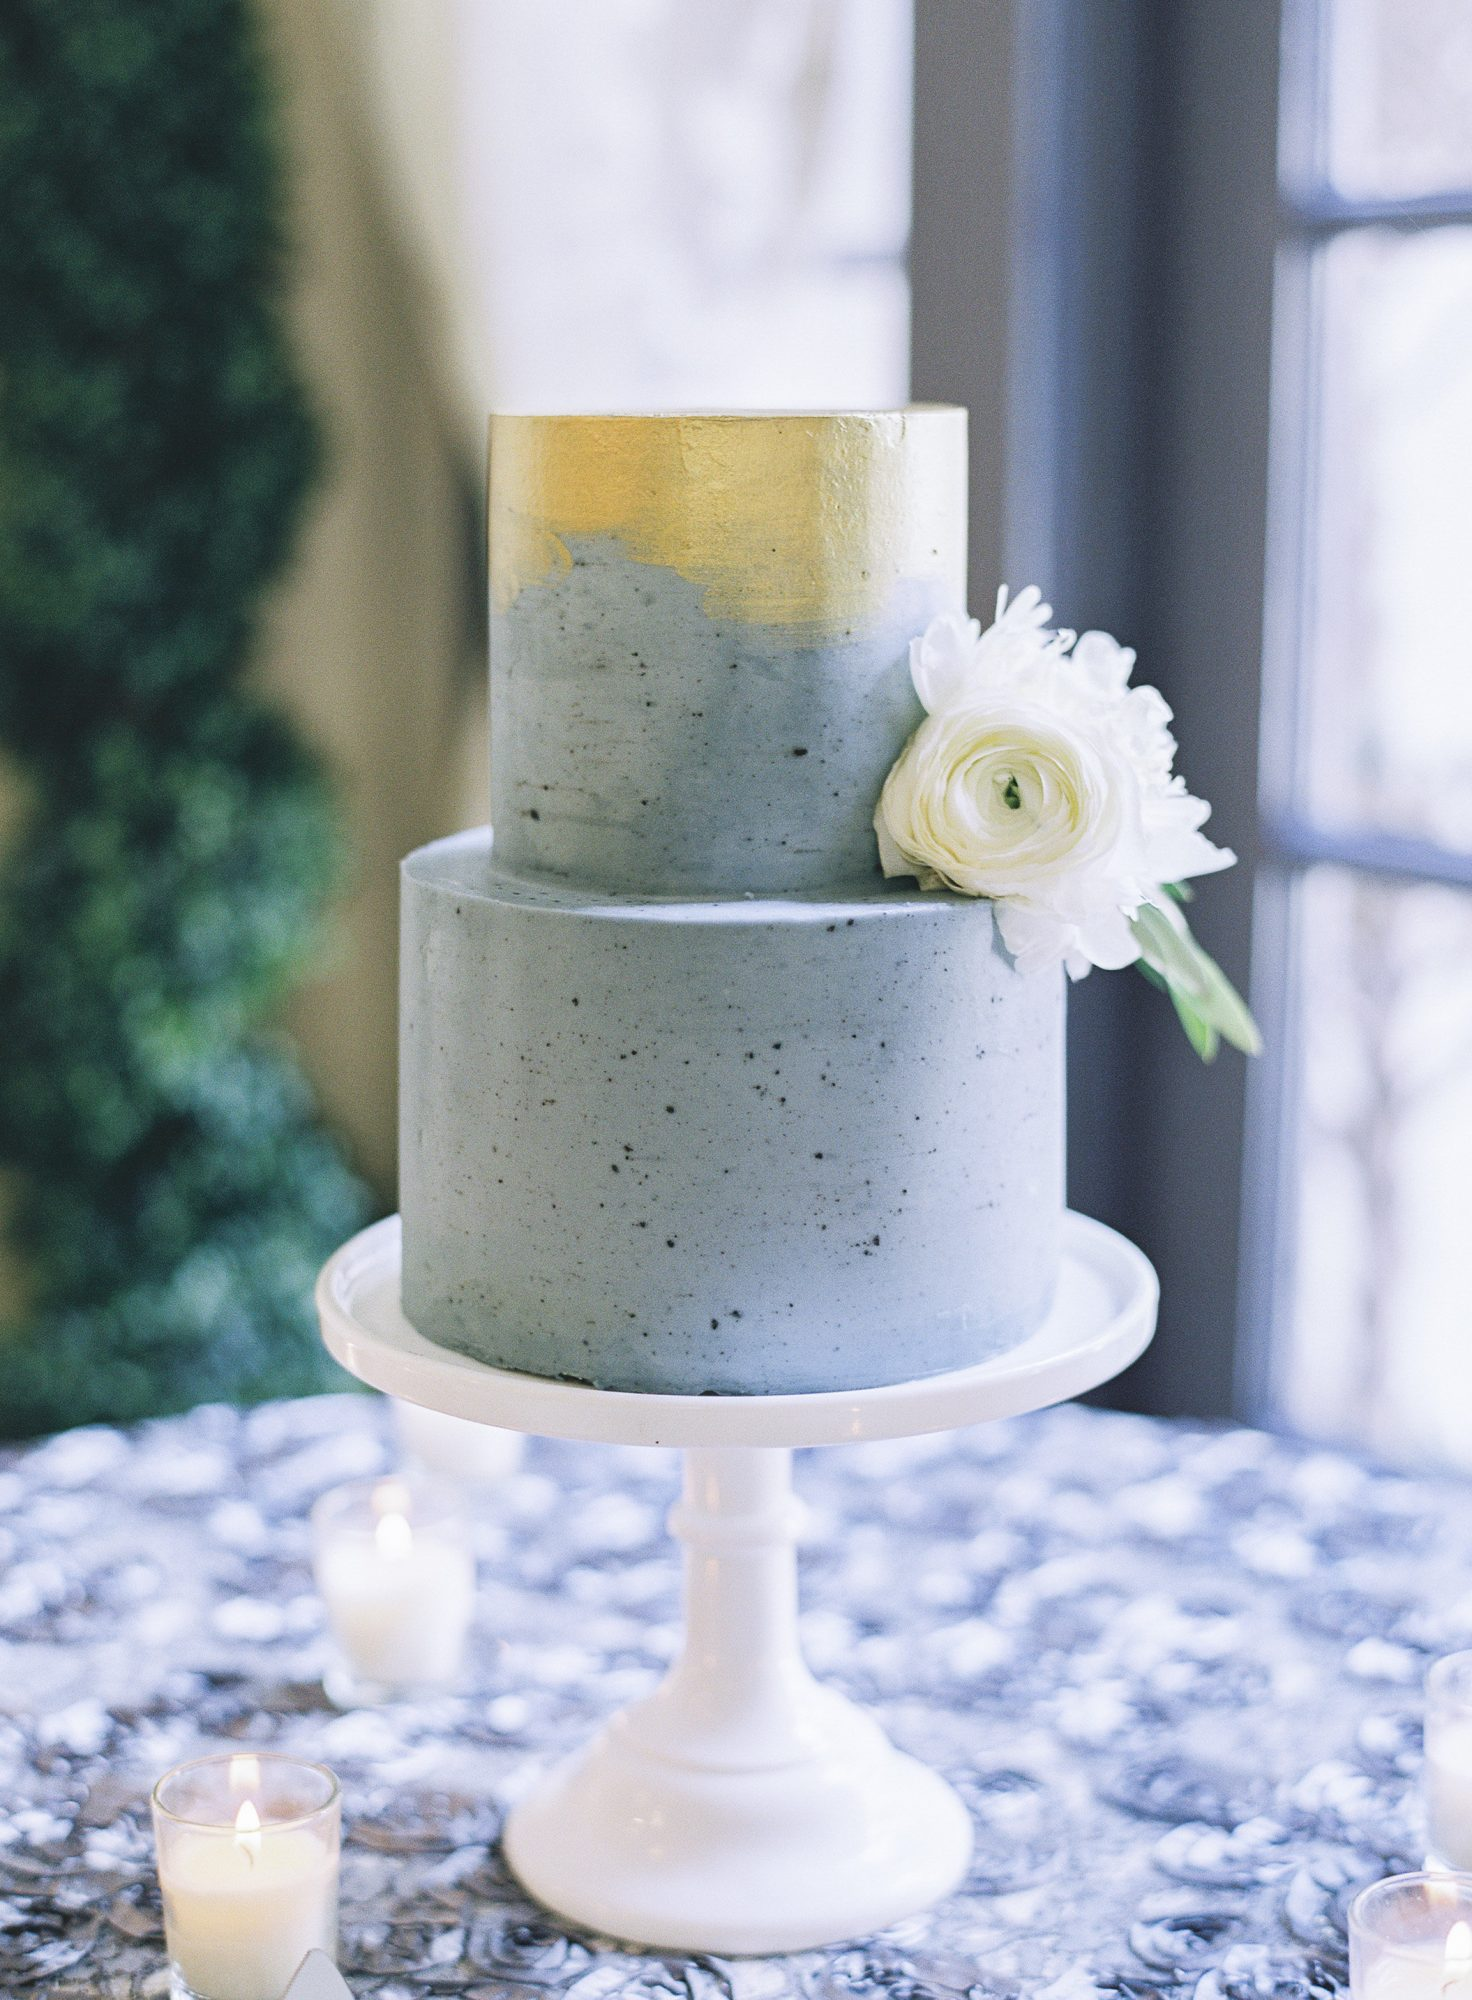 A speckled design is surprising but still spring-appropriate. The colors on this cake resembled staples of the season: sunshine mixed with rain.